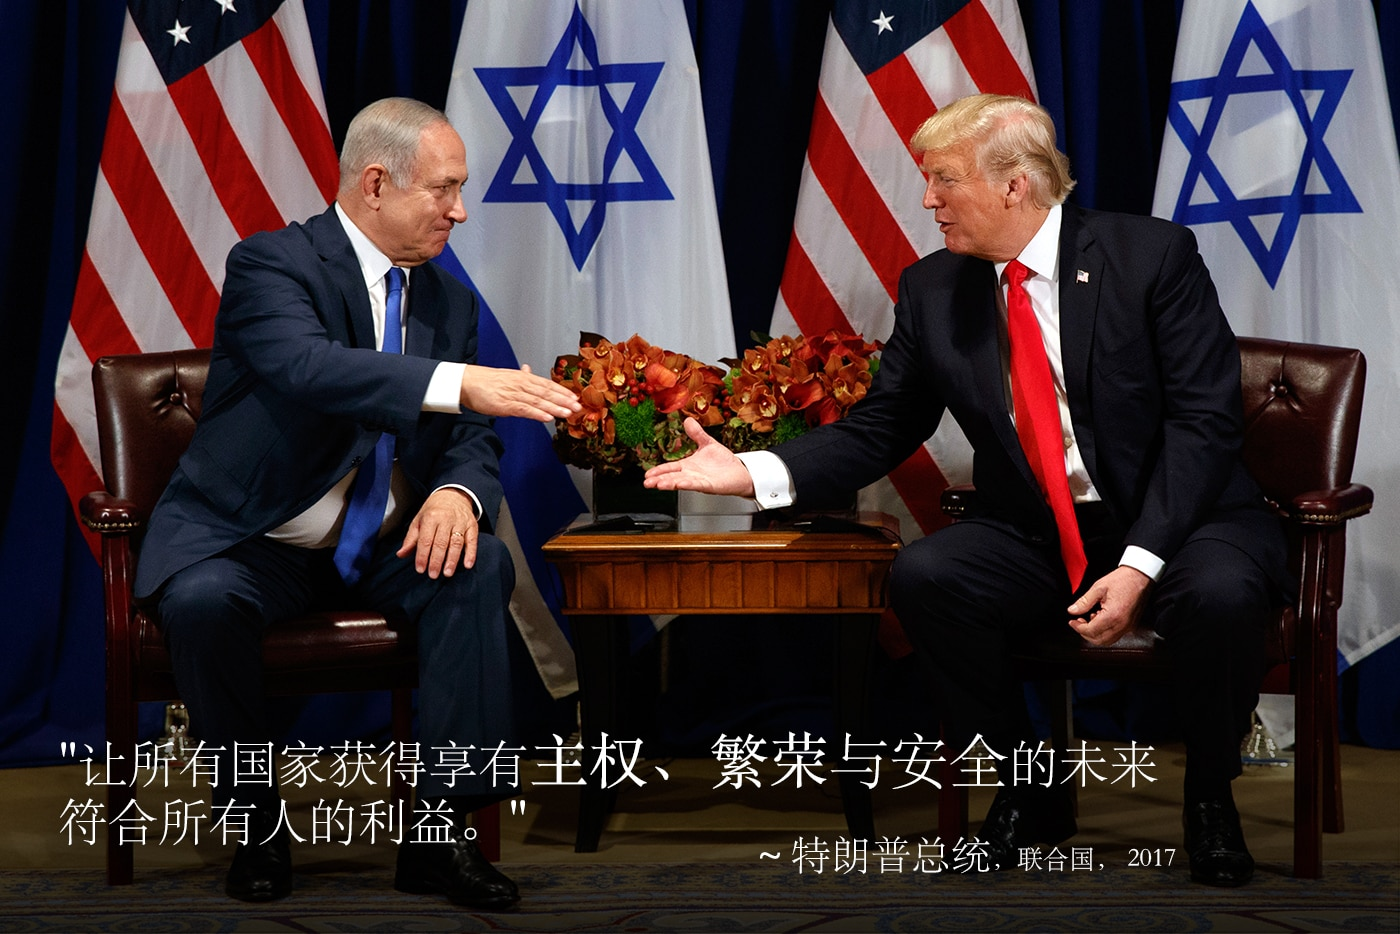 Benjamin Netanyahu and President Trump seated and shaking hands, with quote from President Trump overlaid (© AP Images)